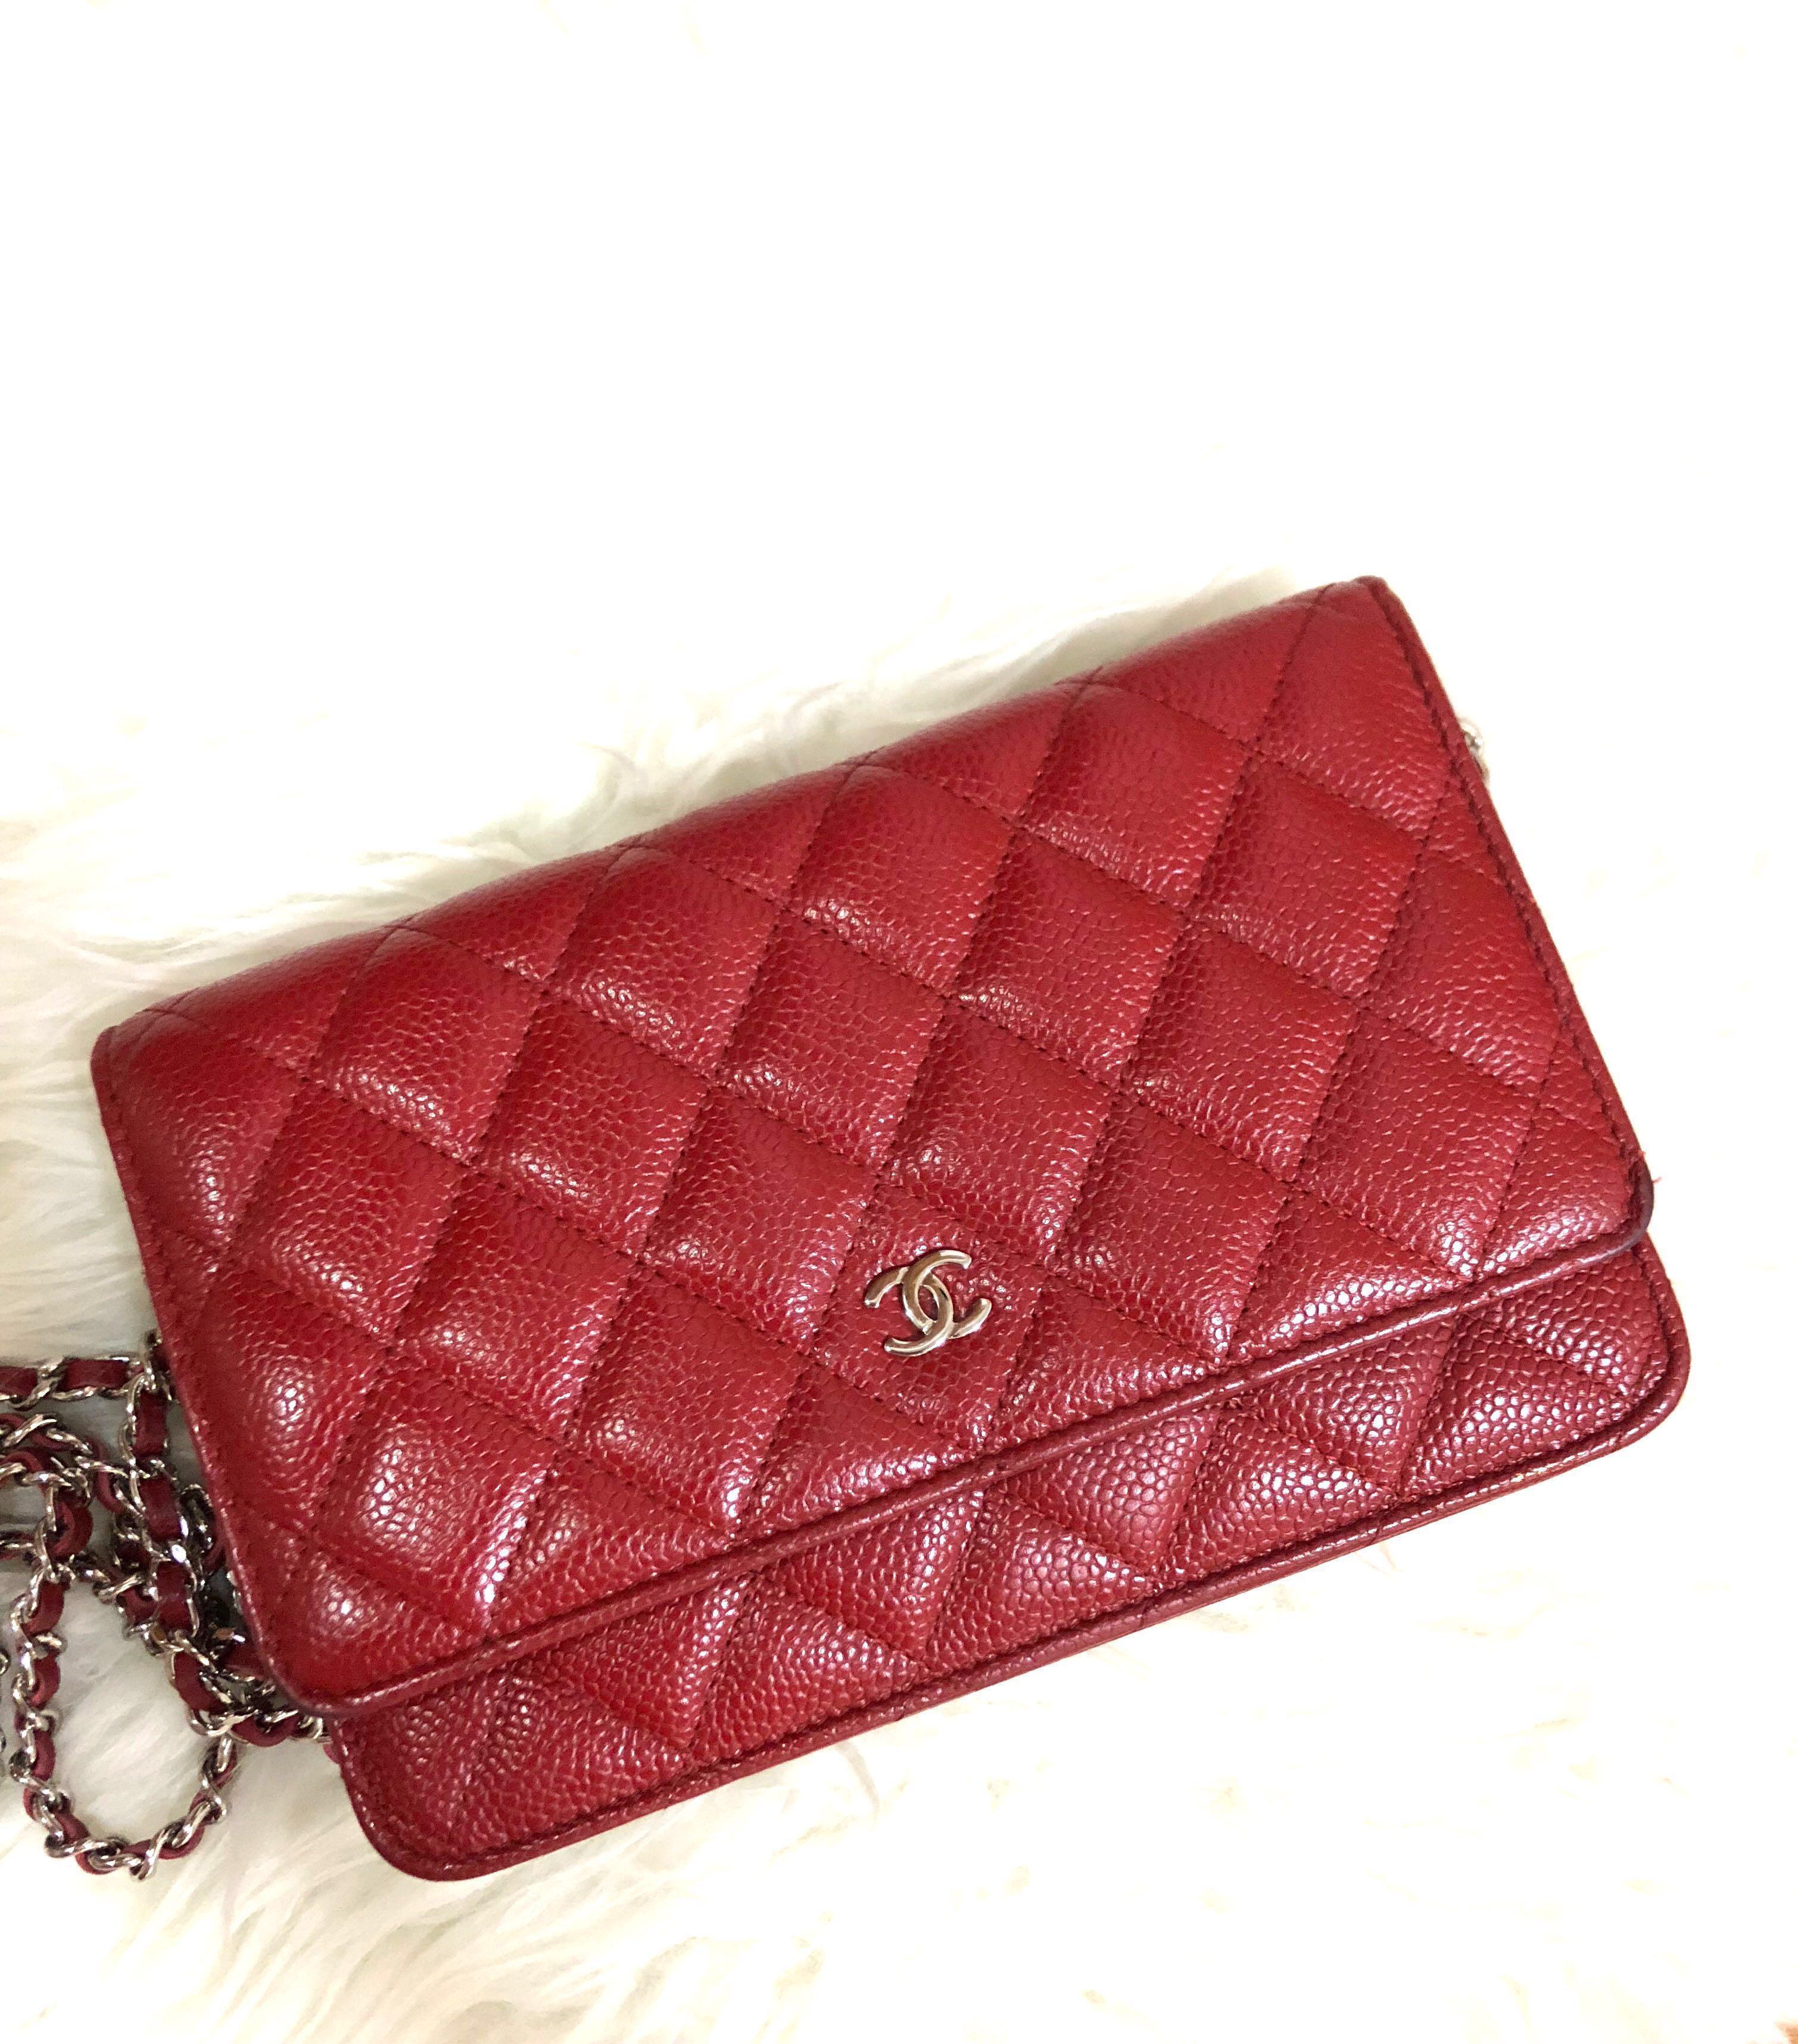 923e1513 Rare! Preloved Chanel Wallet on Chain WOC in Red Caviar Shw, Luxury ...